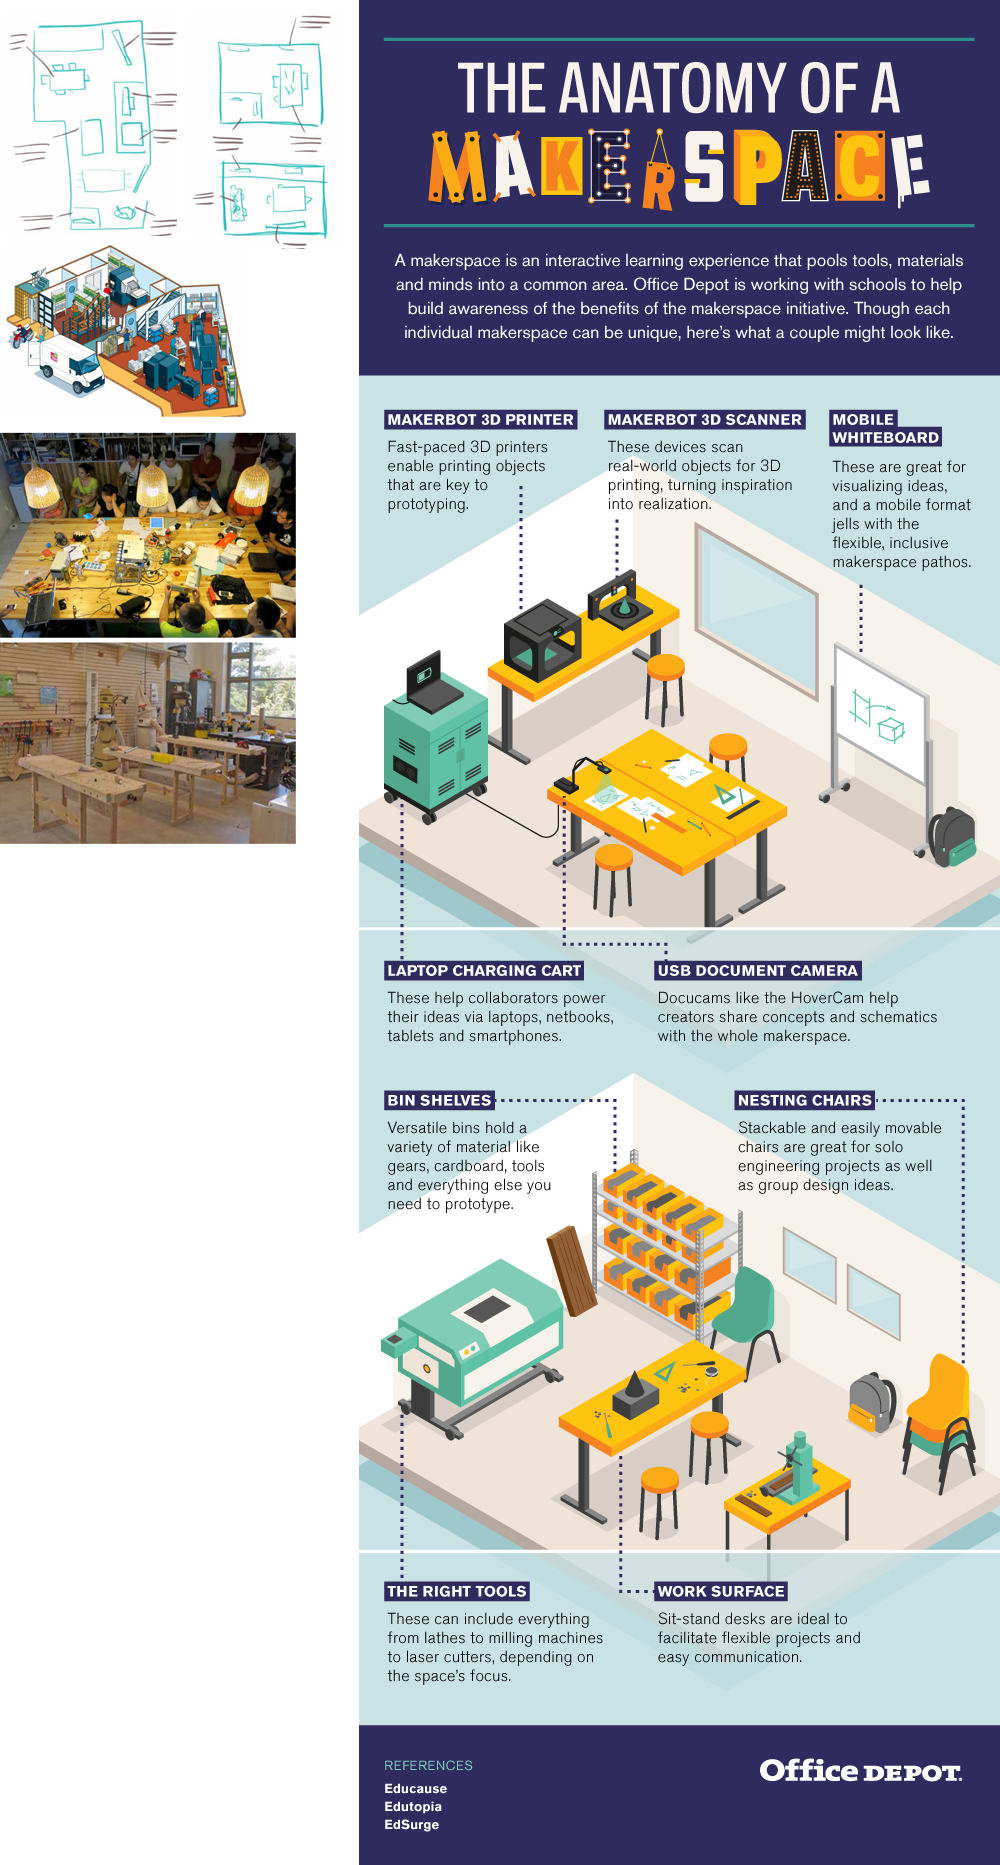 Office Depot: Anatomy of a Makerspace infographic